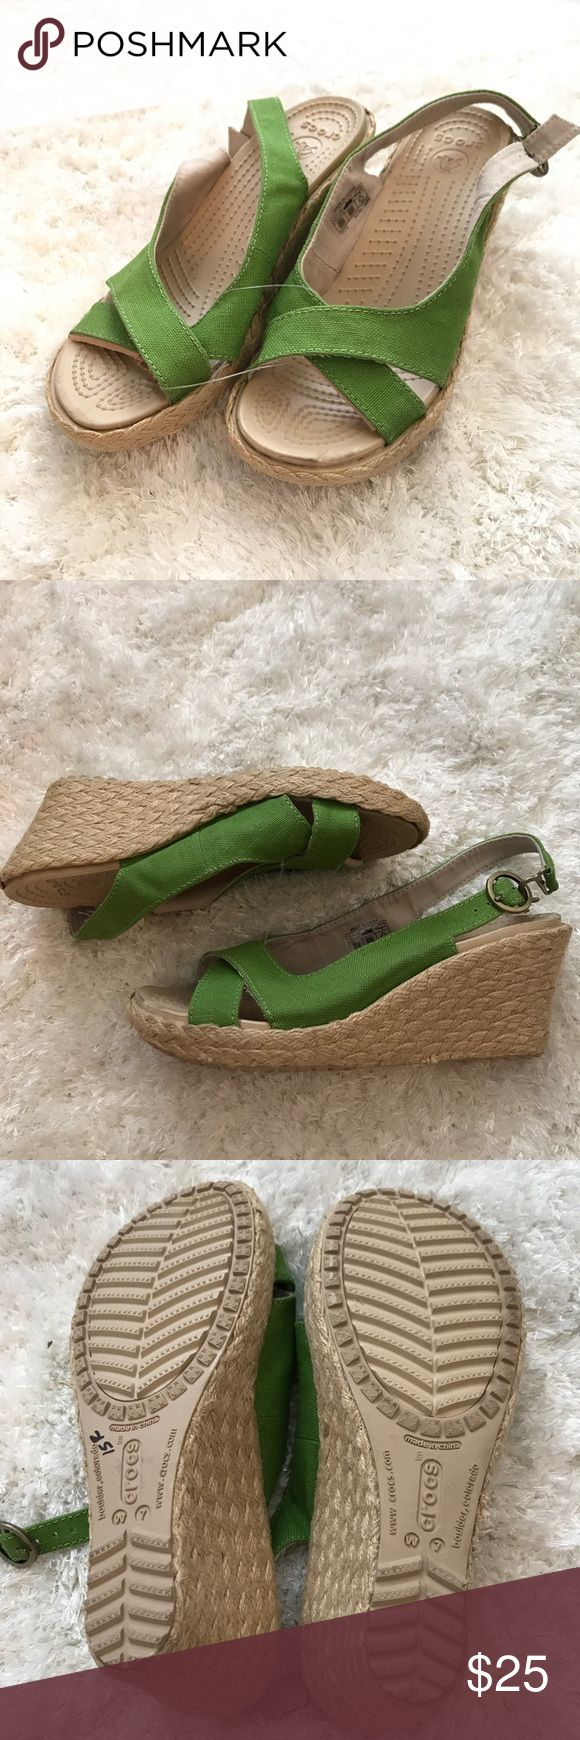 Crocs green espadrille Wedge New without box-small mark( see last photo). Open peep toe. Comfort CROCS Shoes Wedges